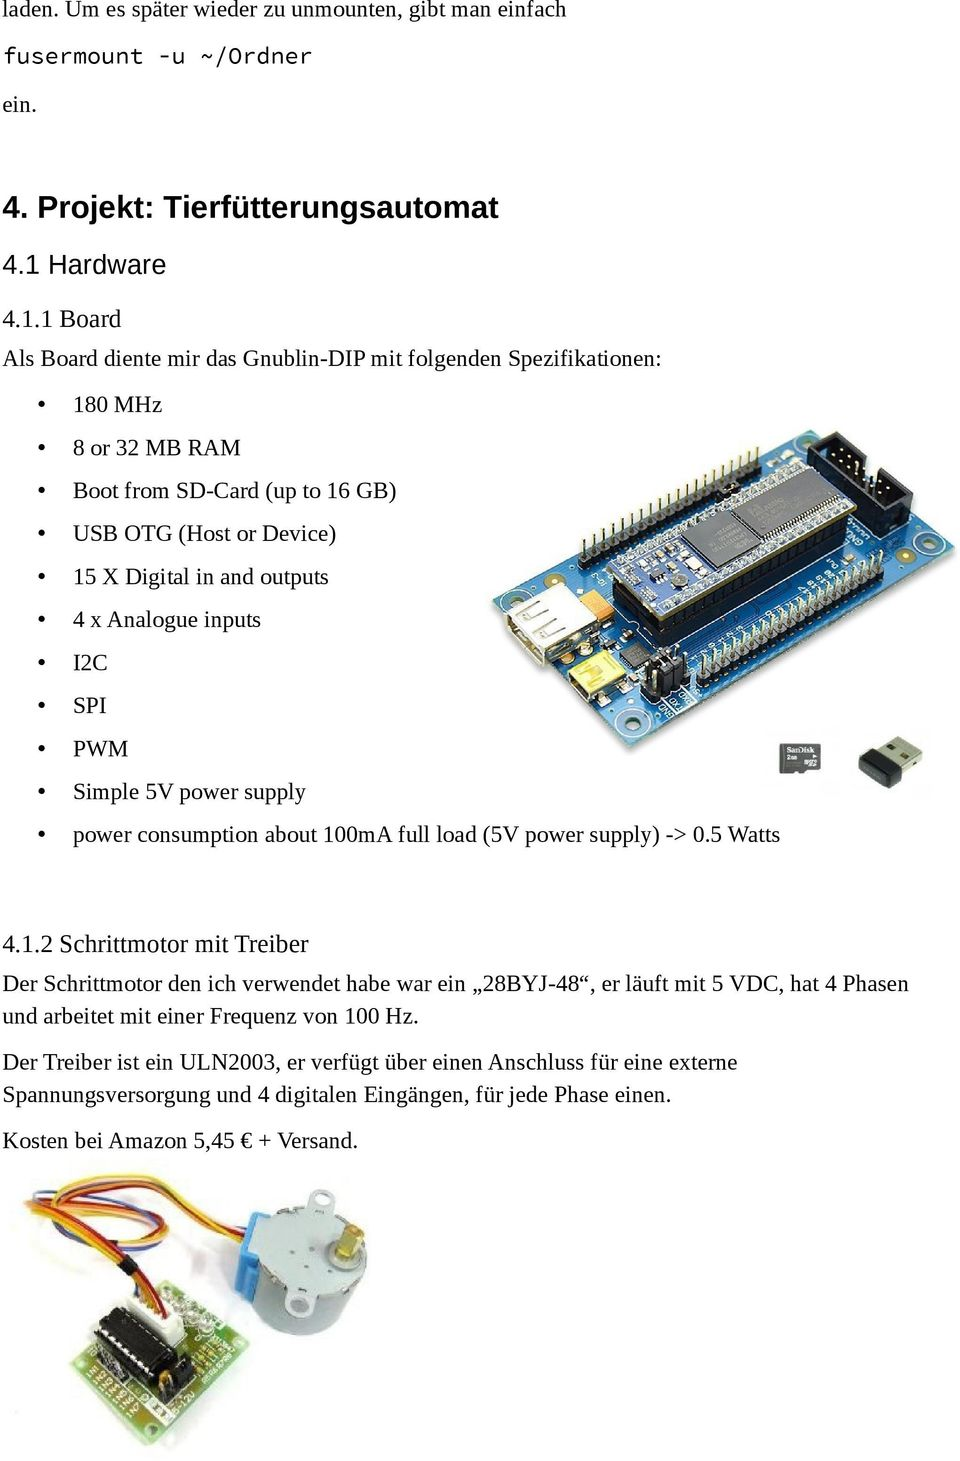 1 Board Als Board diente mir das Gnublin-DIP mit folgenden Spezifikationen: 180 MHz 8 or 32 MB RAM Boot from SD-Card (up to 16 GB) USB OTG (Host or Device) 15 X Digital in and outputs 4 x Analogue